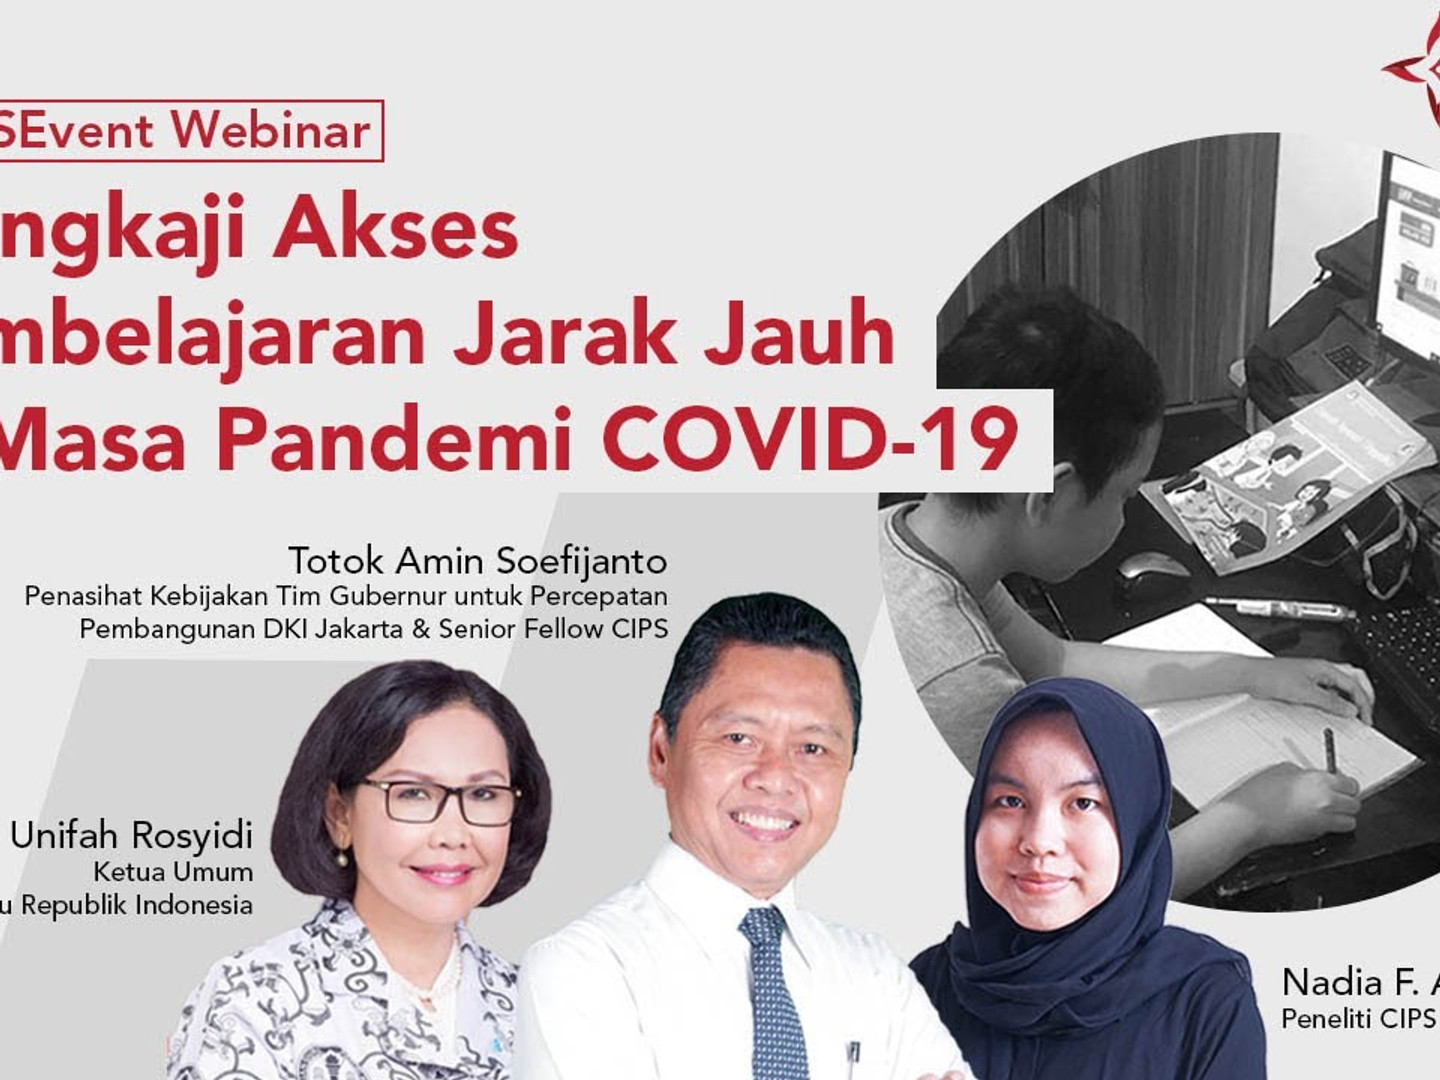 Webinar on Studying Distance Learning Acces during Covid-19 Pandemic